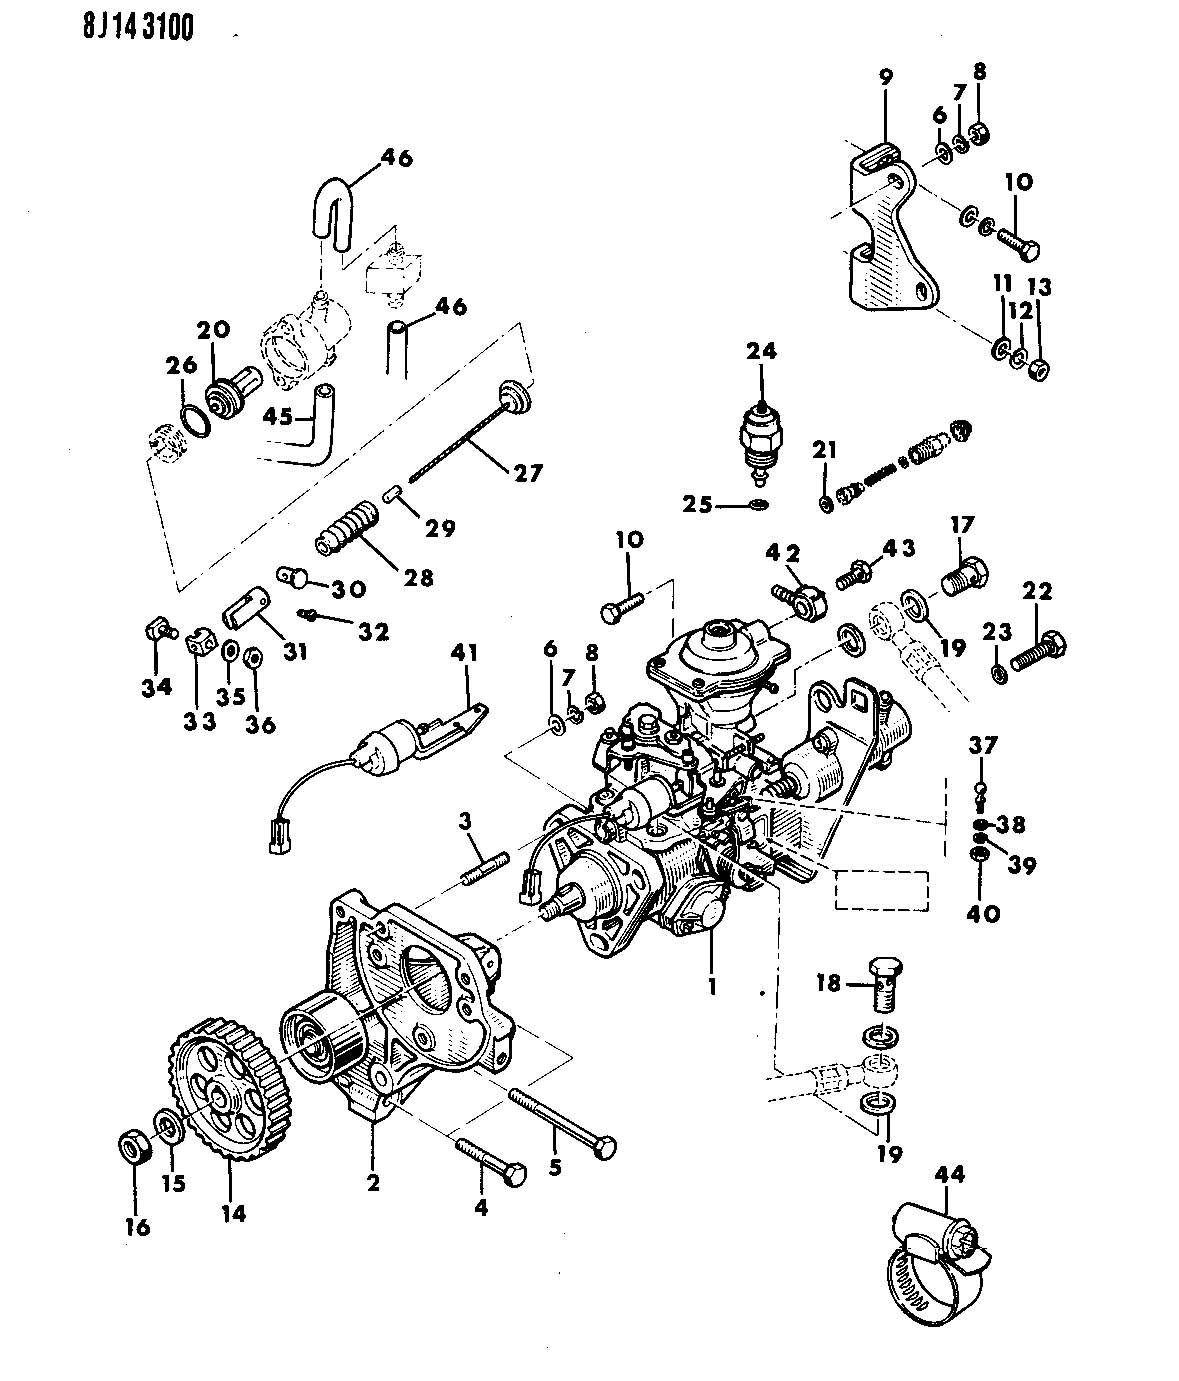 jeep xj fuel pump wiring diagram jeep steering column